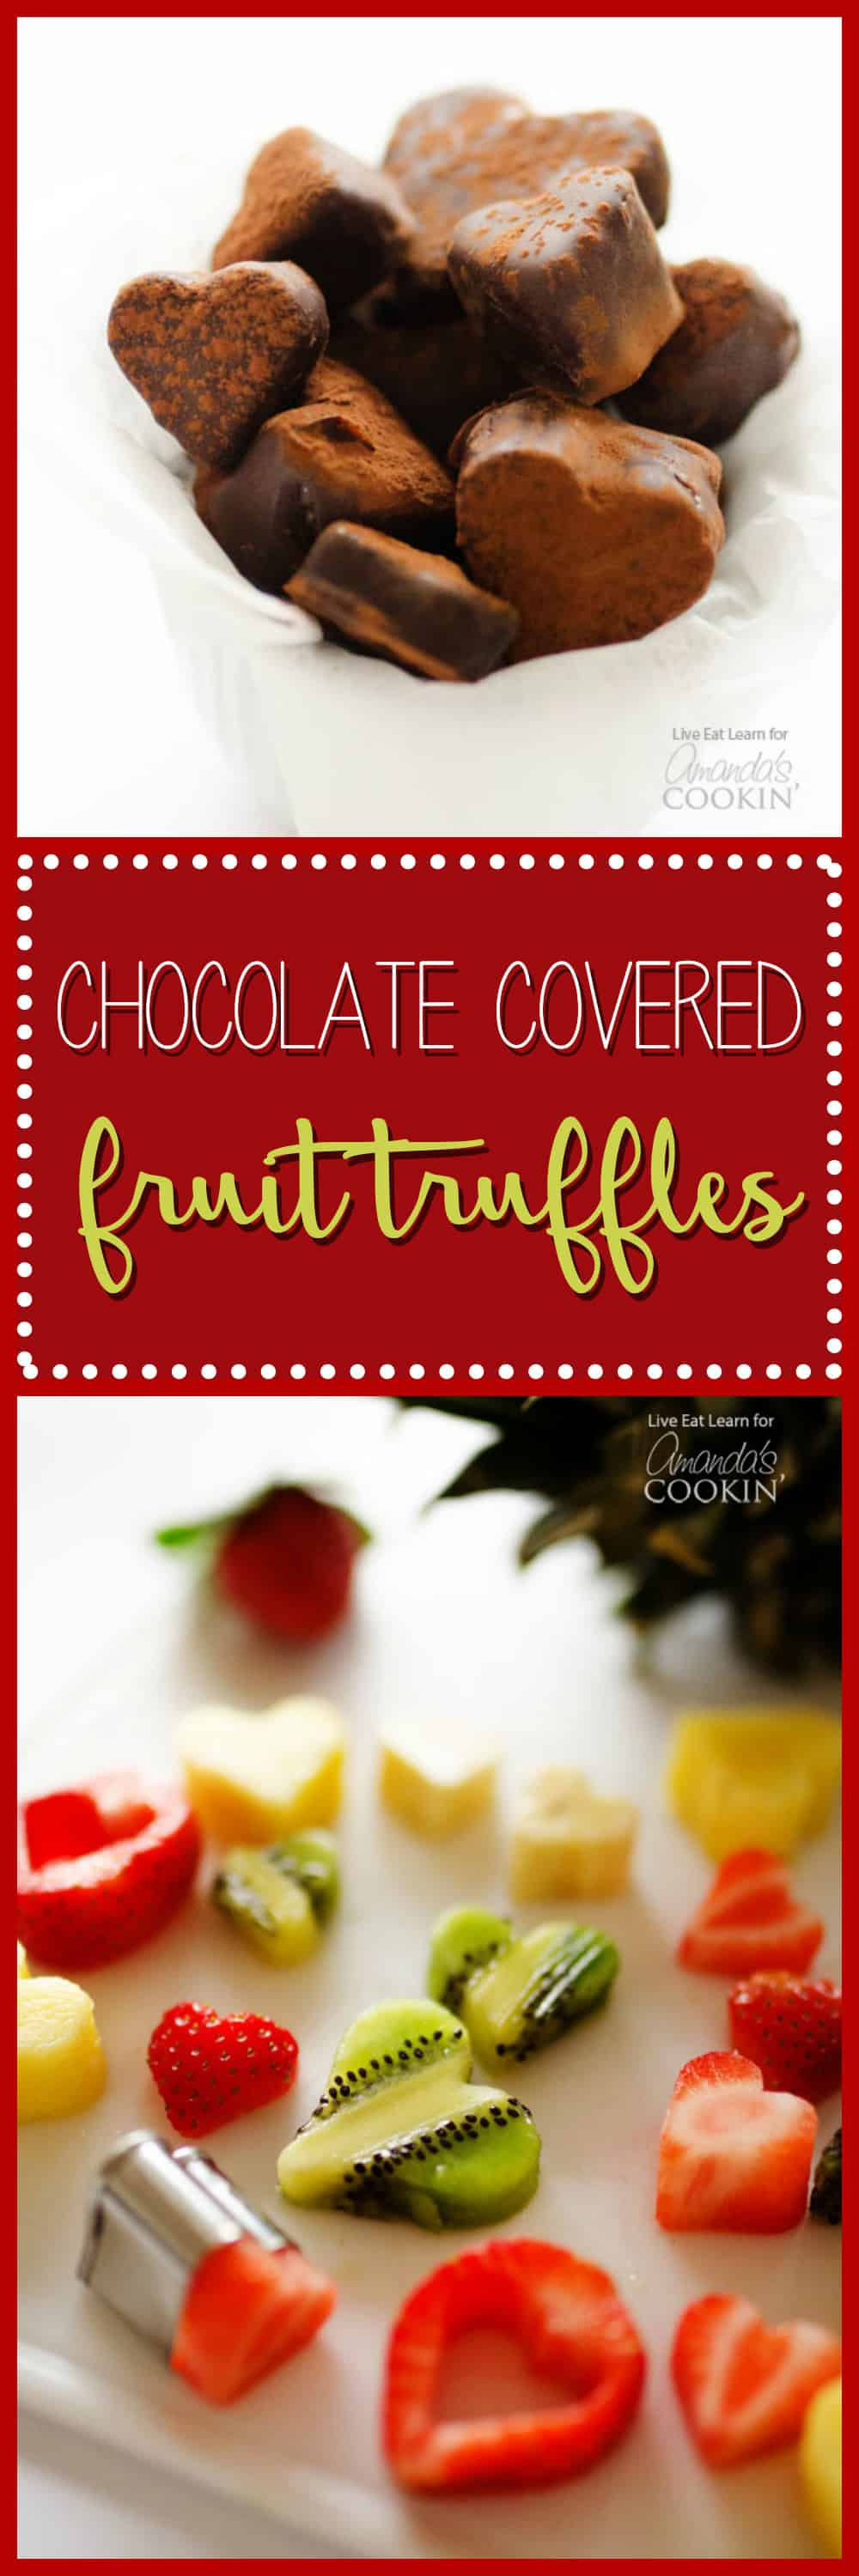 A photo of chocolate covered fruit truffles.